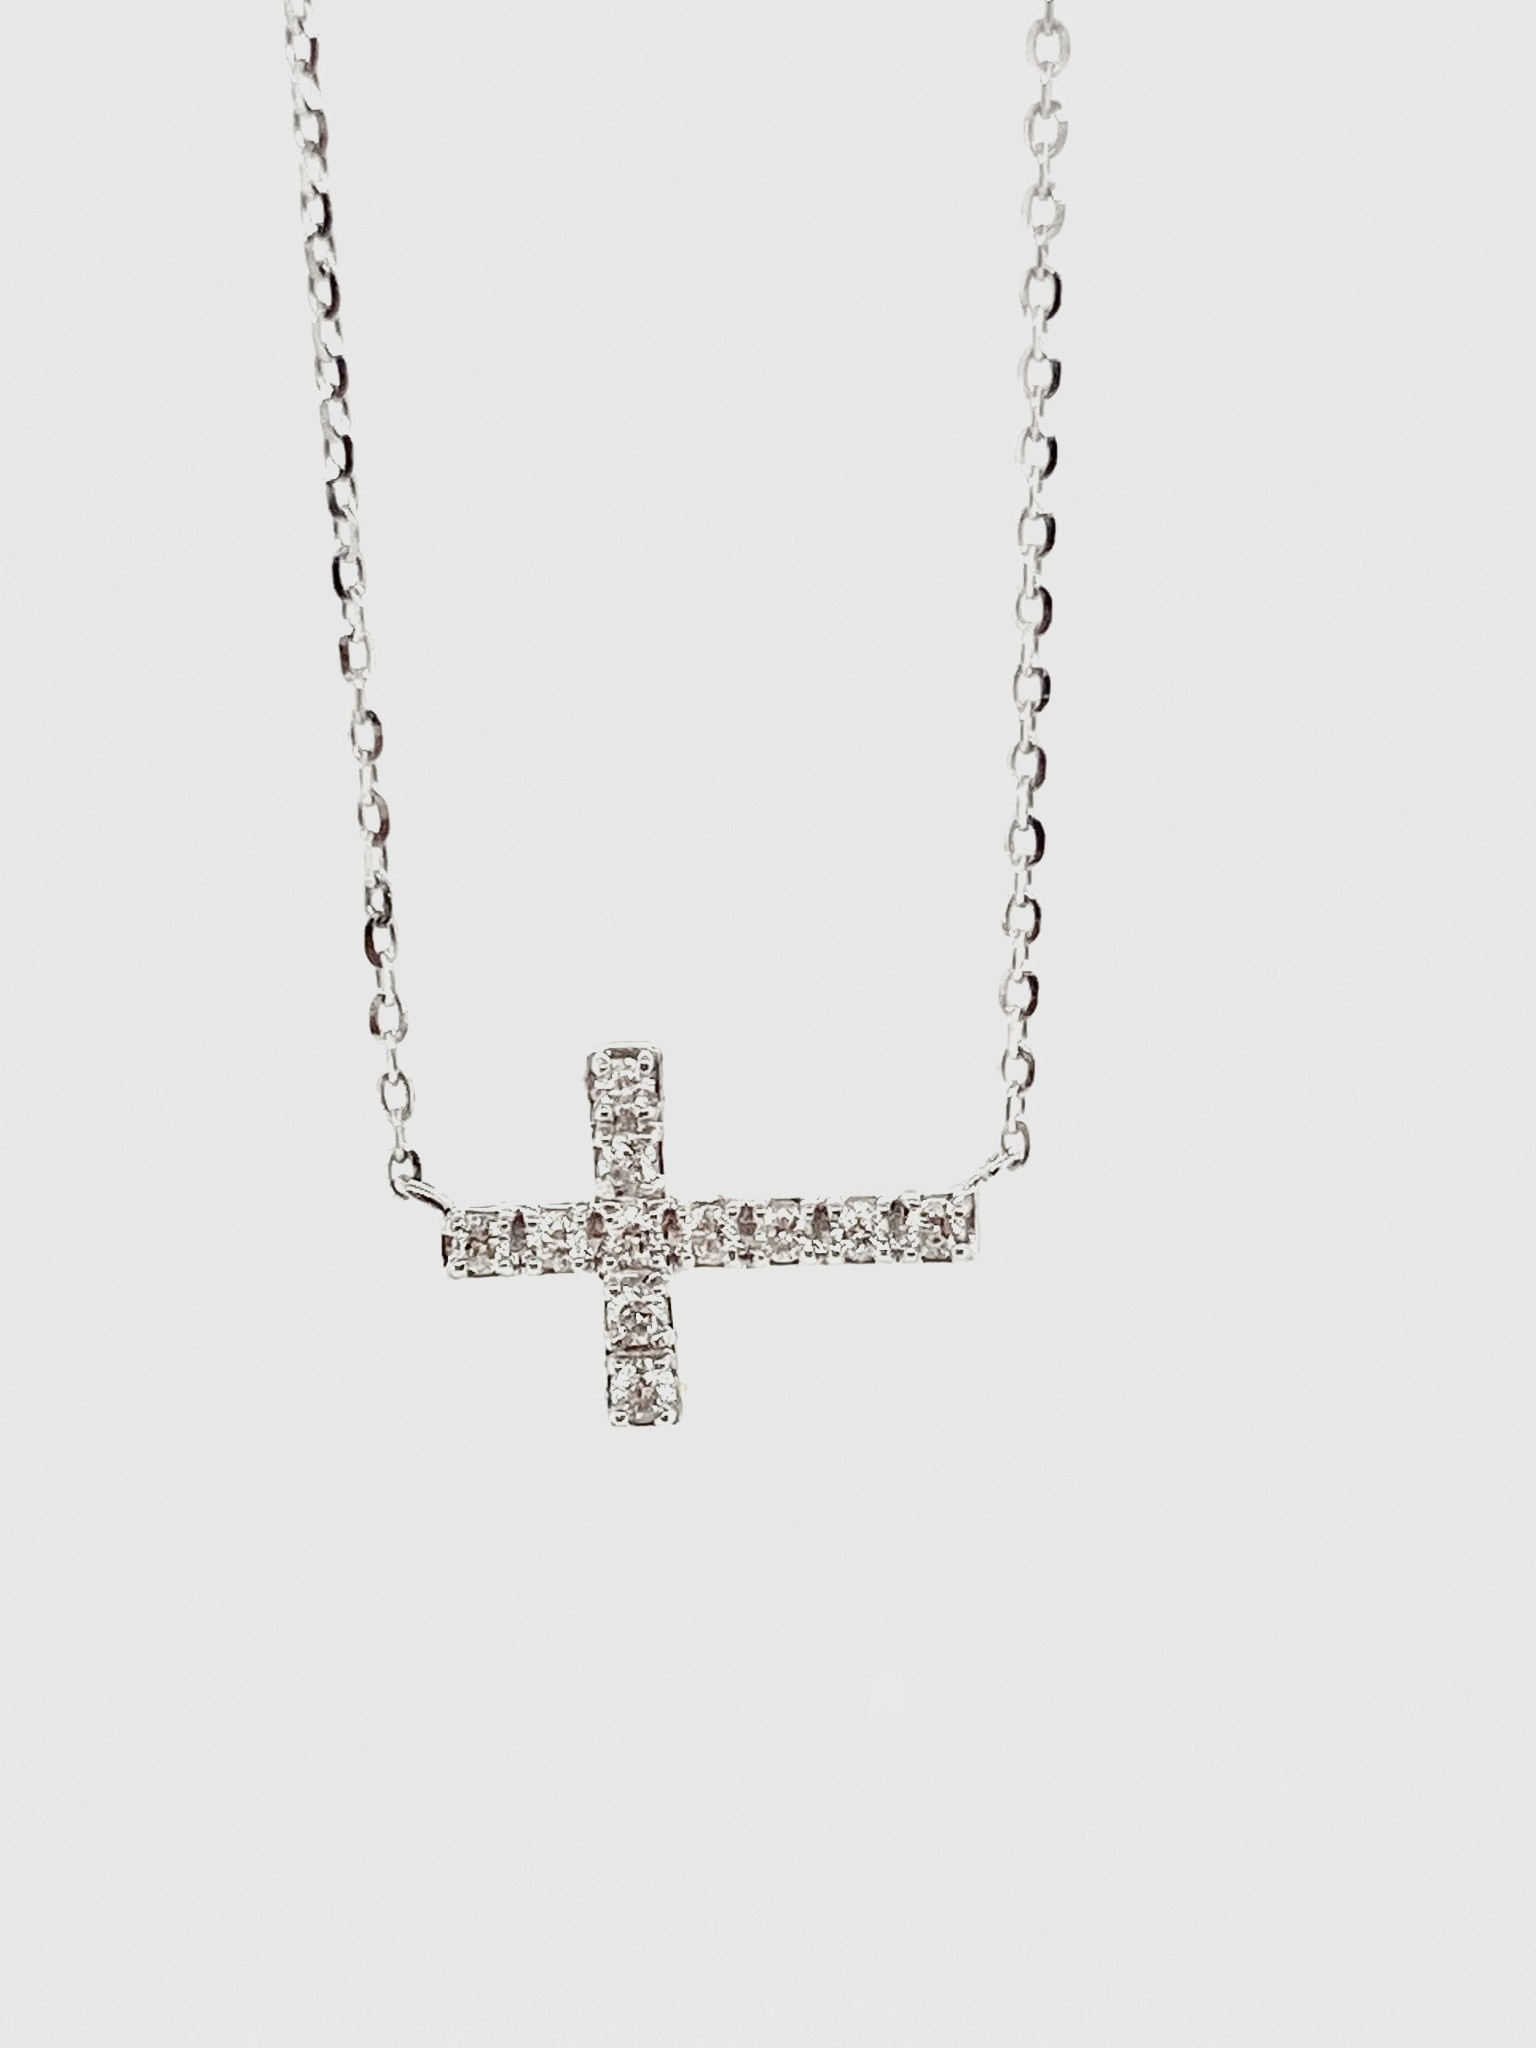 14K White Gold 0.11ct Diamonds Cross Necklace